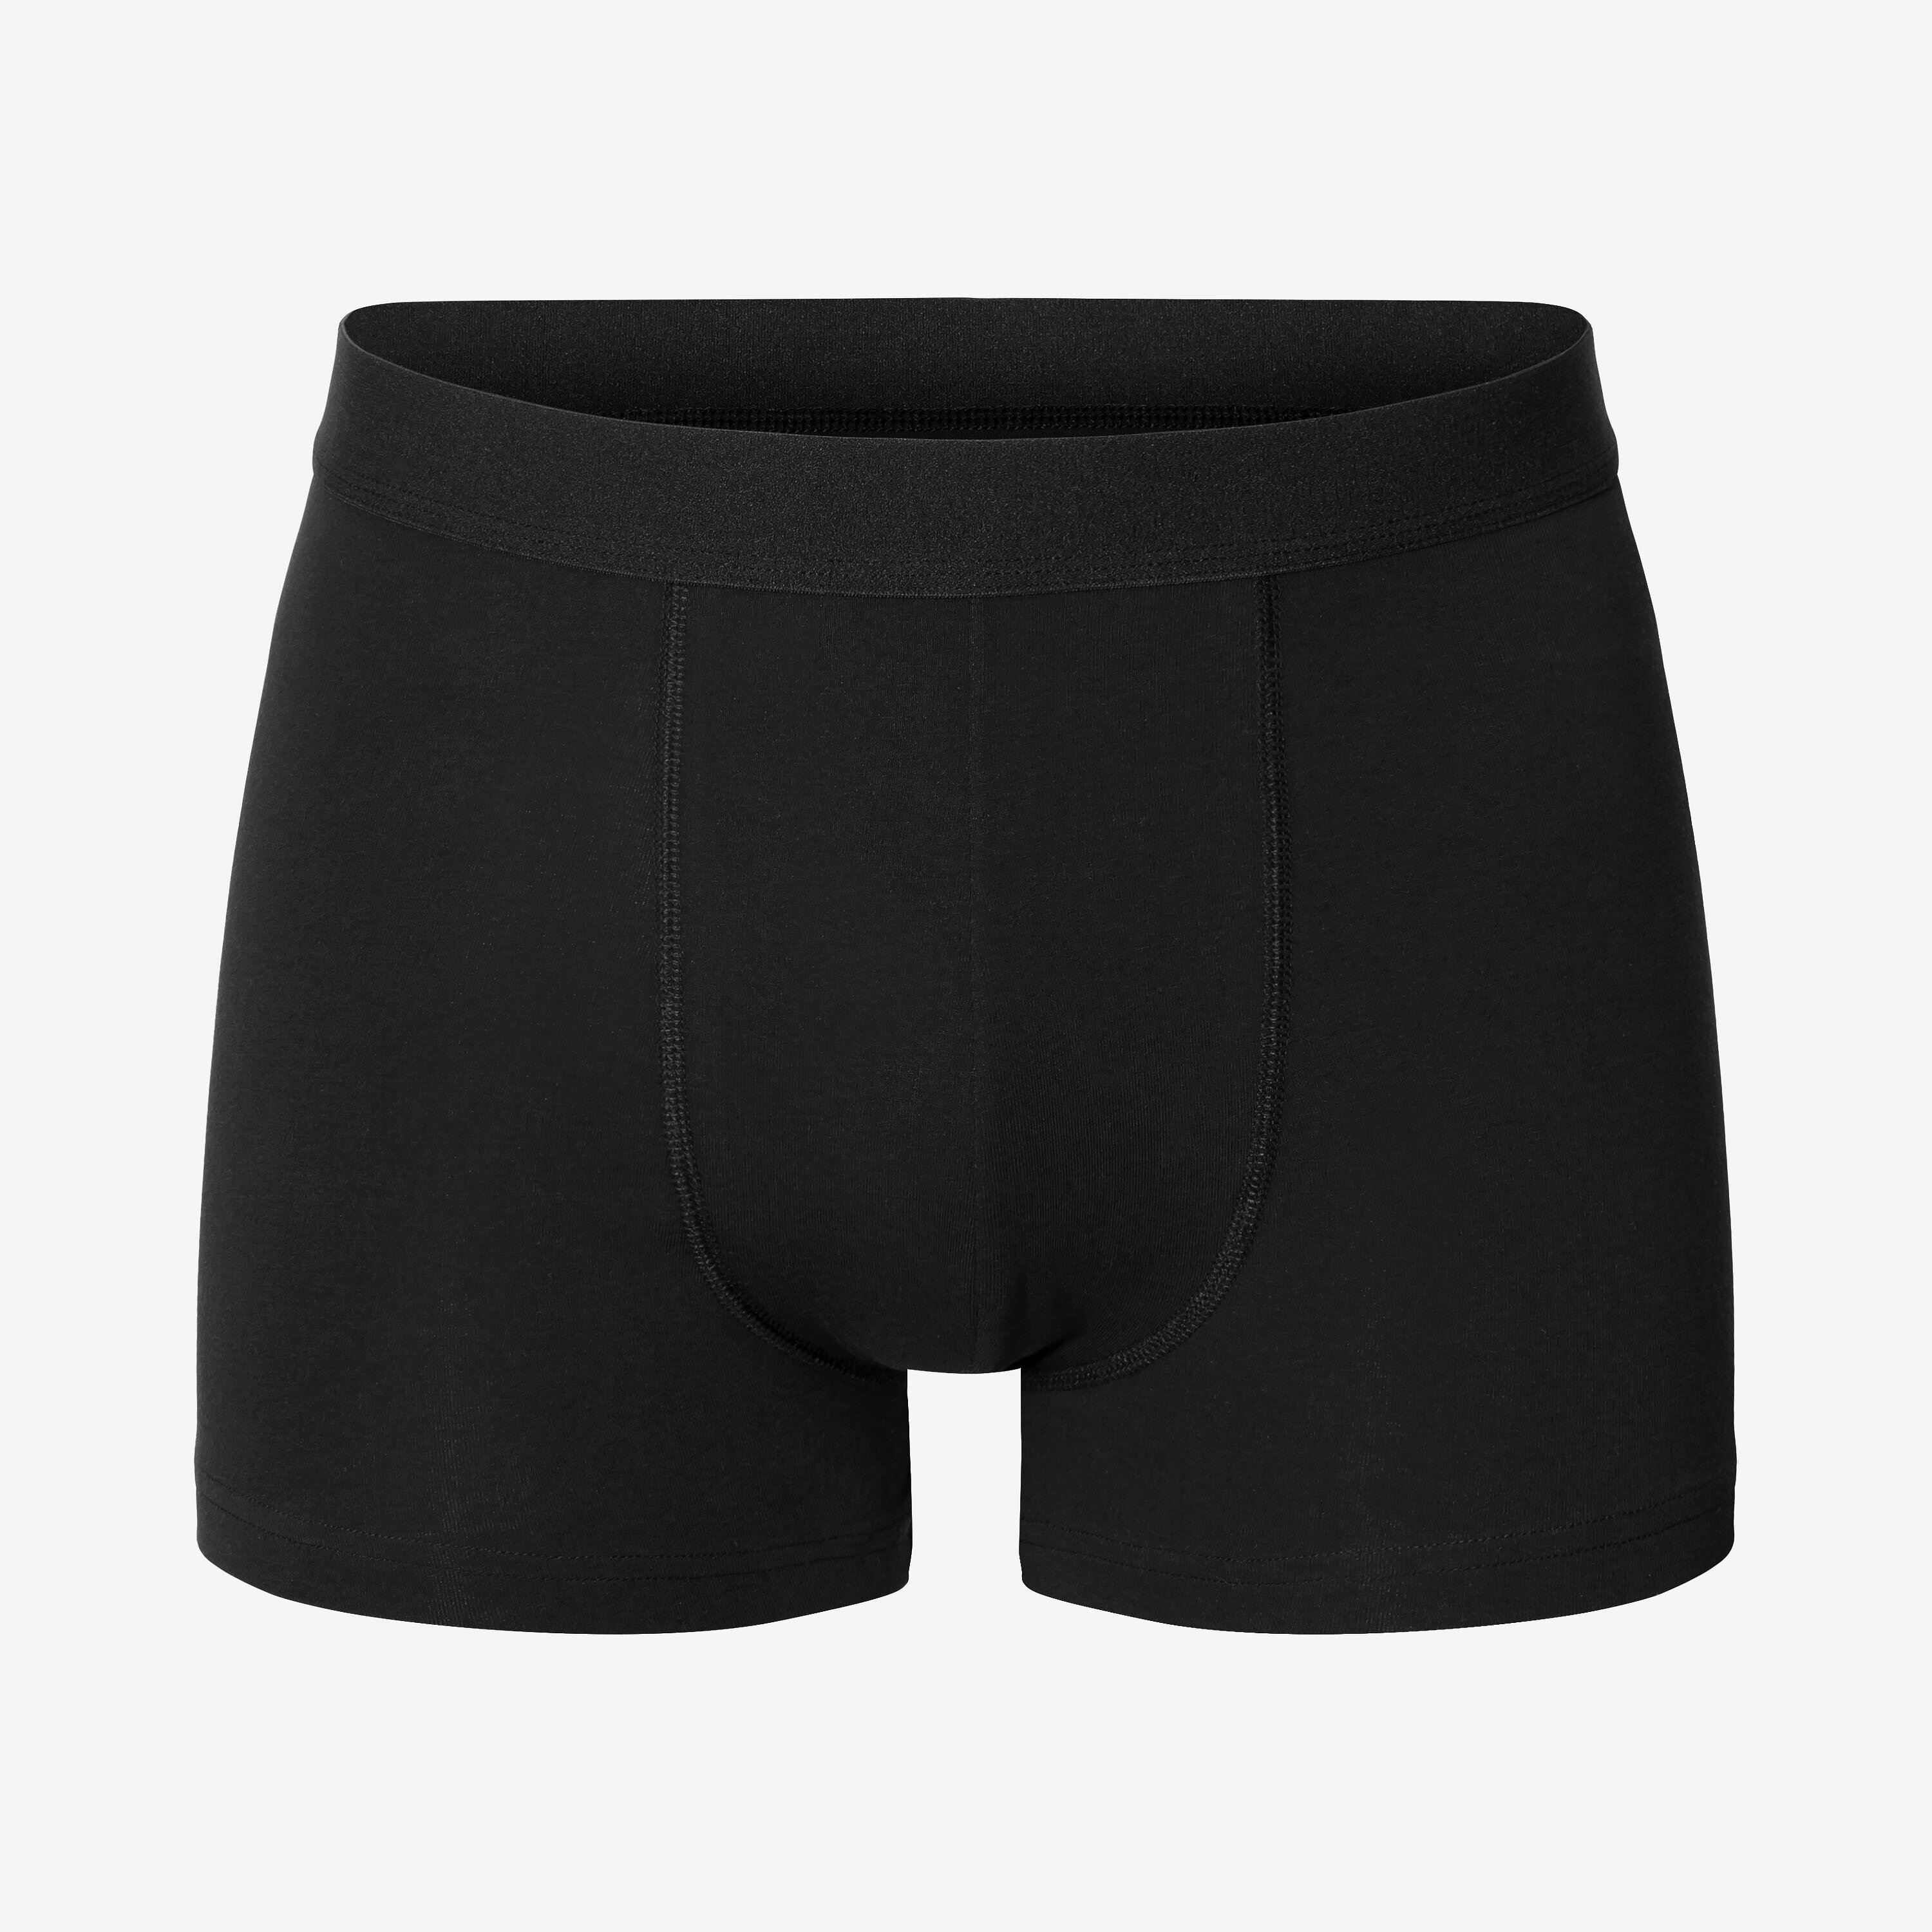 202202_Man_Boxer-Brief_black_CO-A